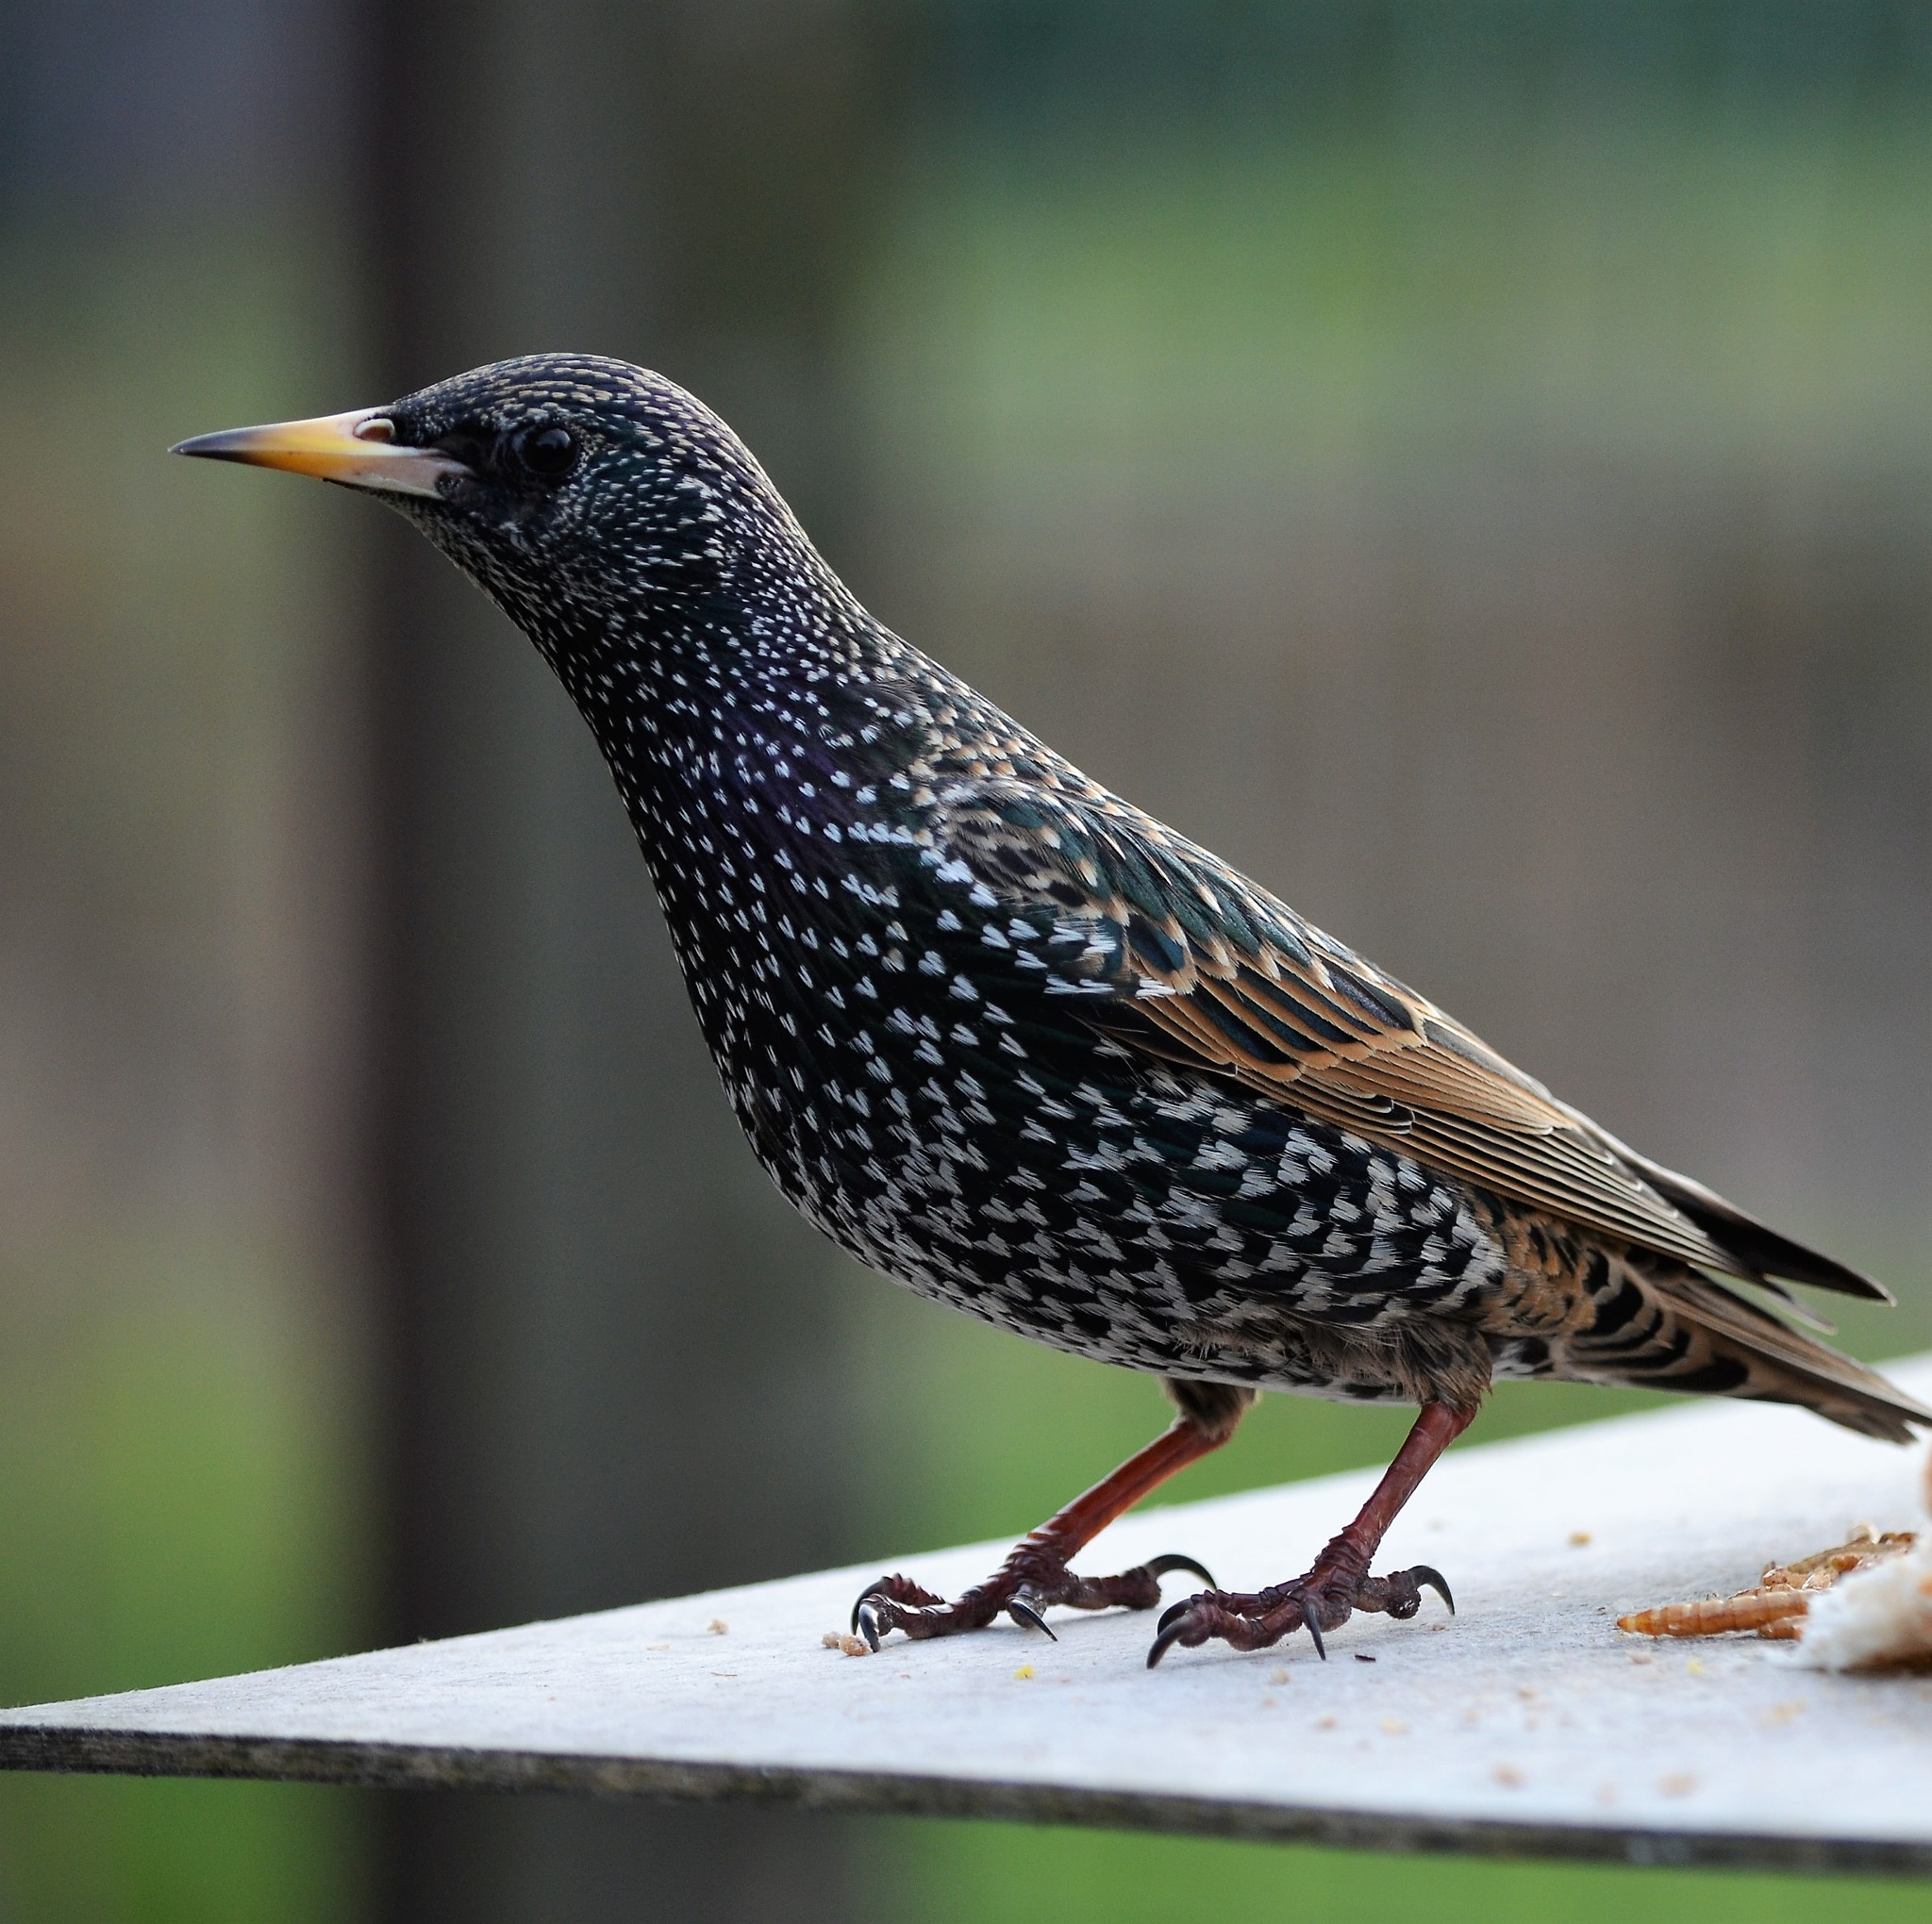 starling at the birdfeeder by franky.decruw